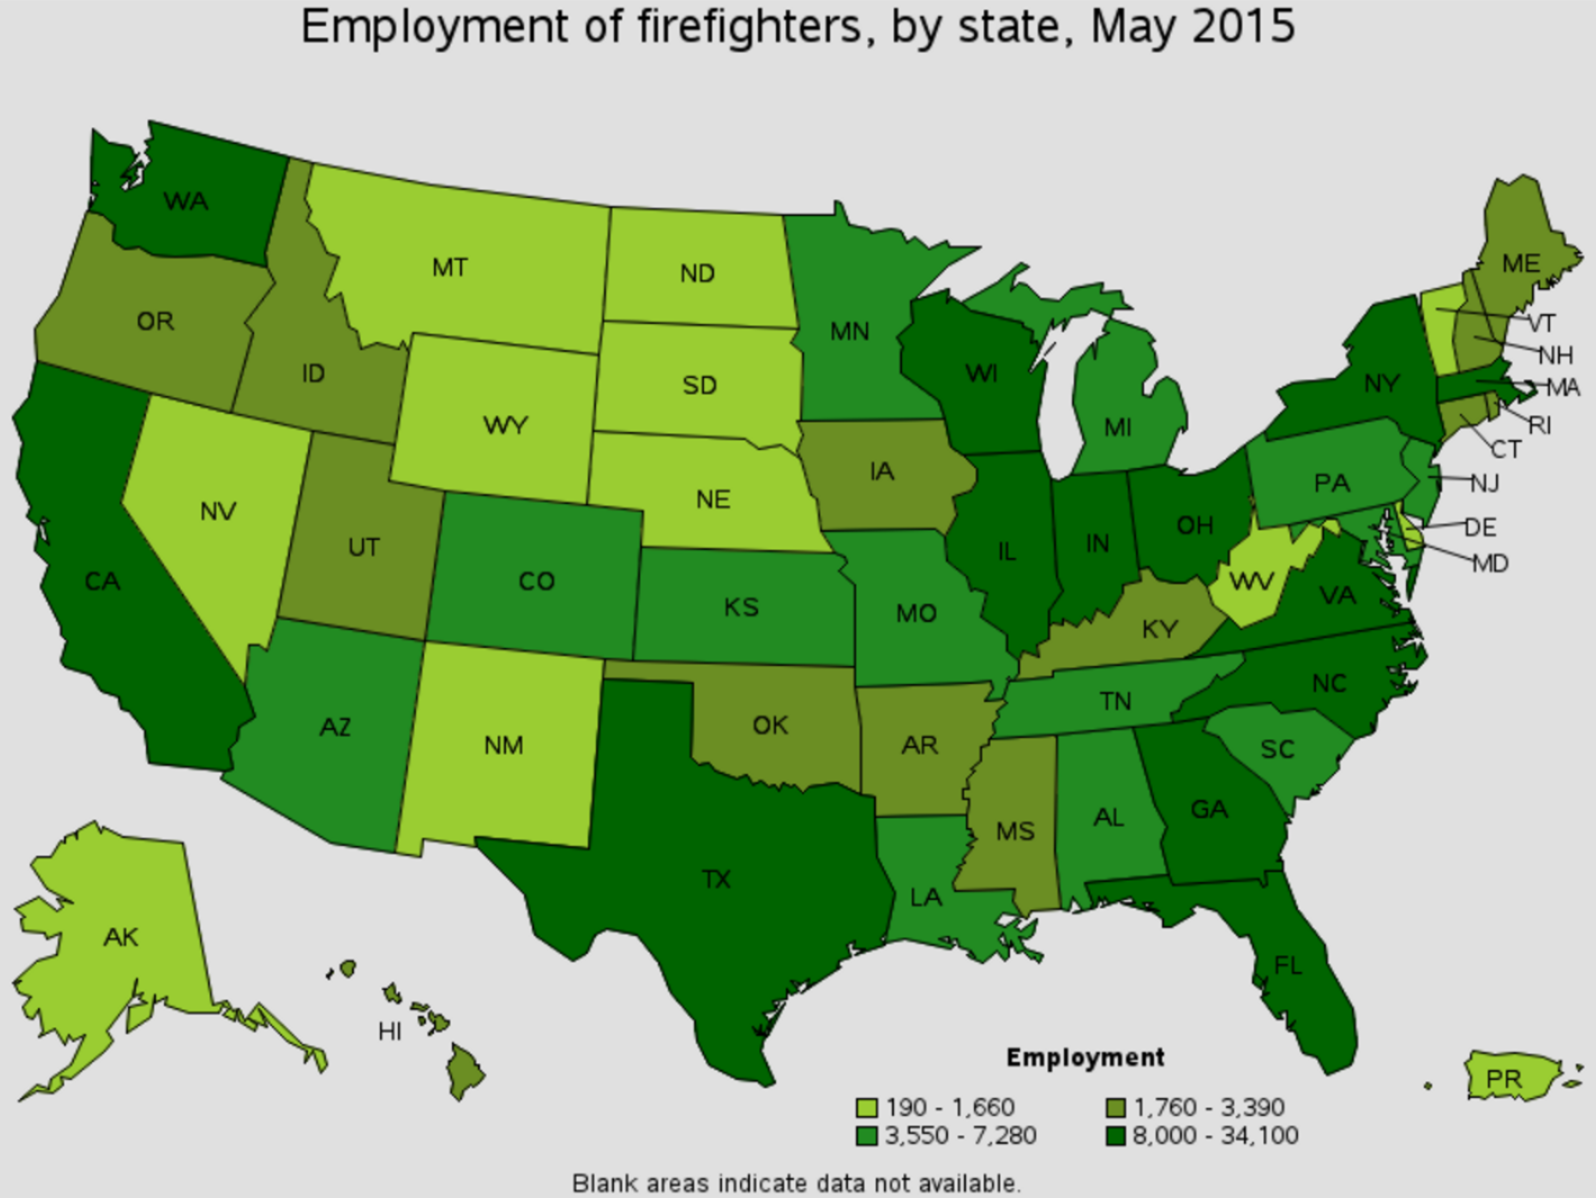 firefighter job outlook by state Grand Rapids Michigan